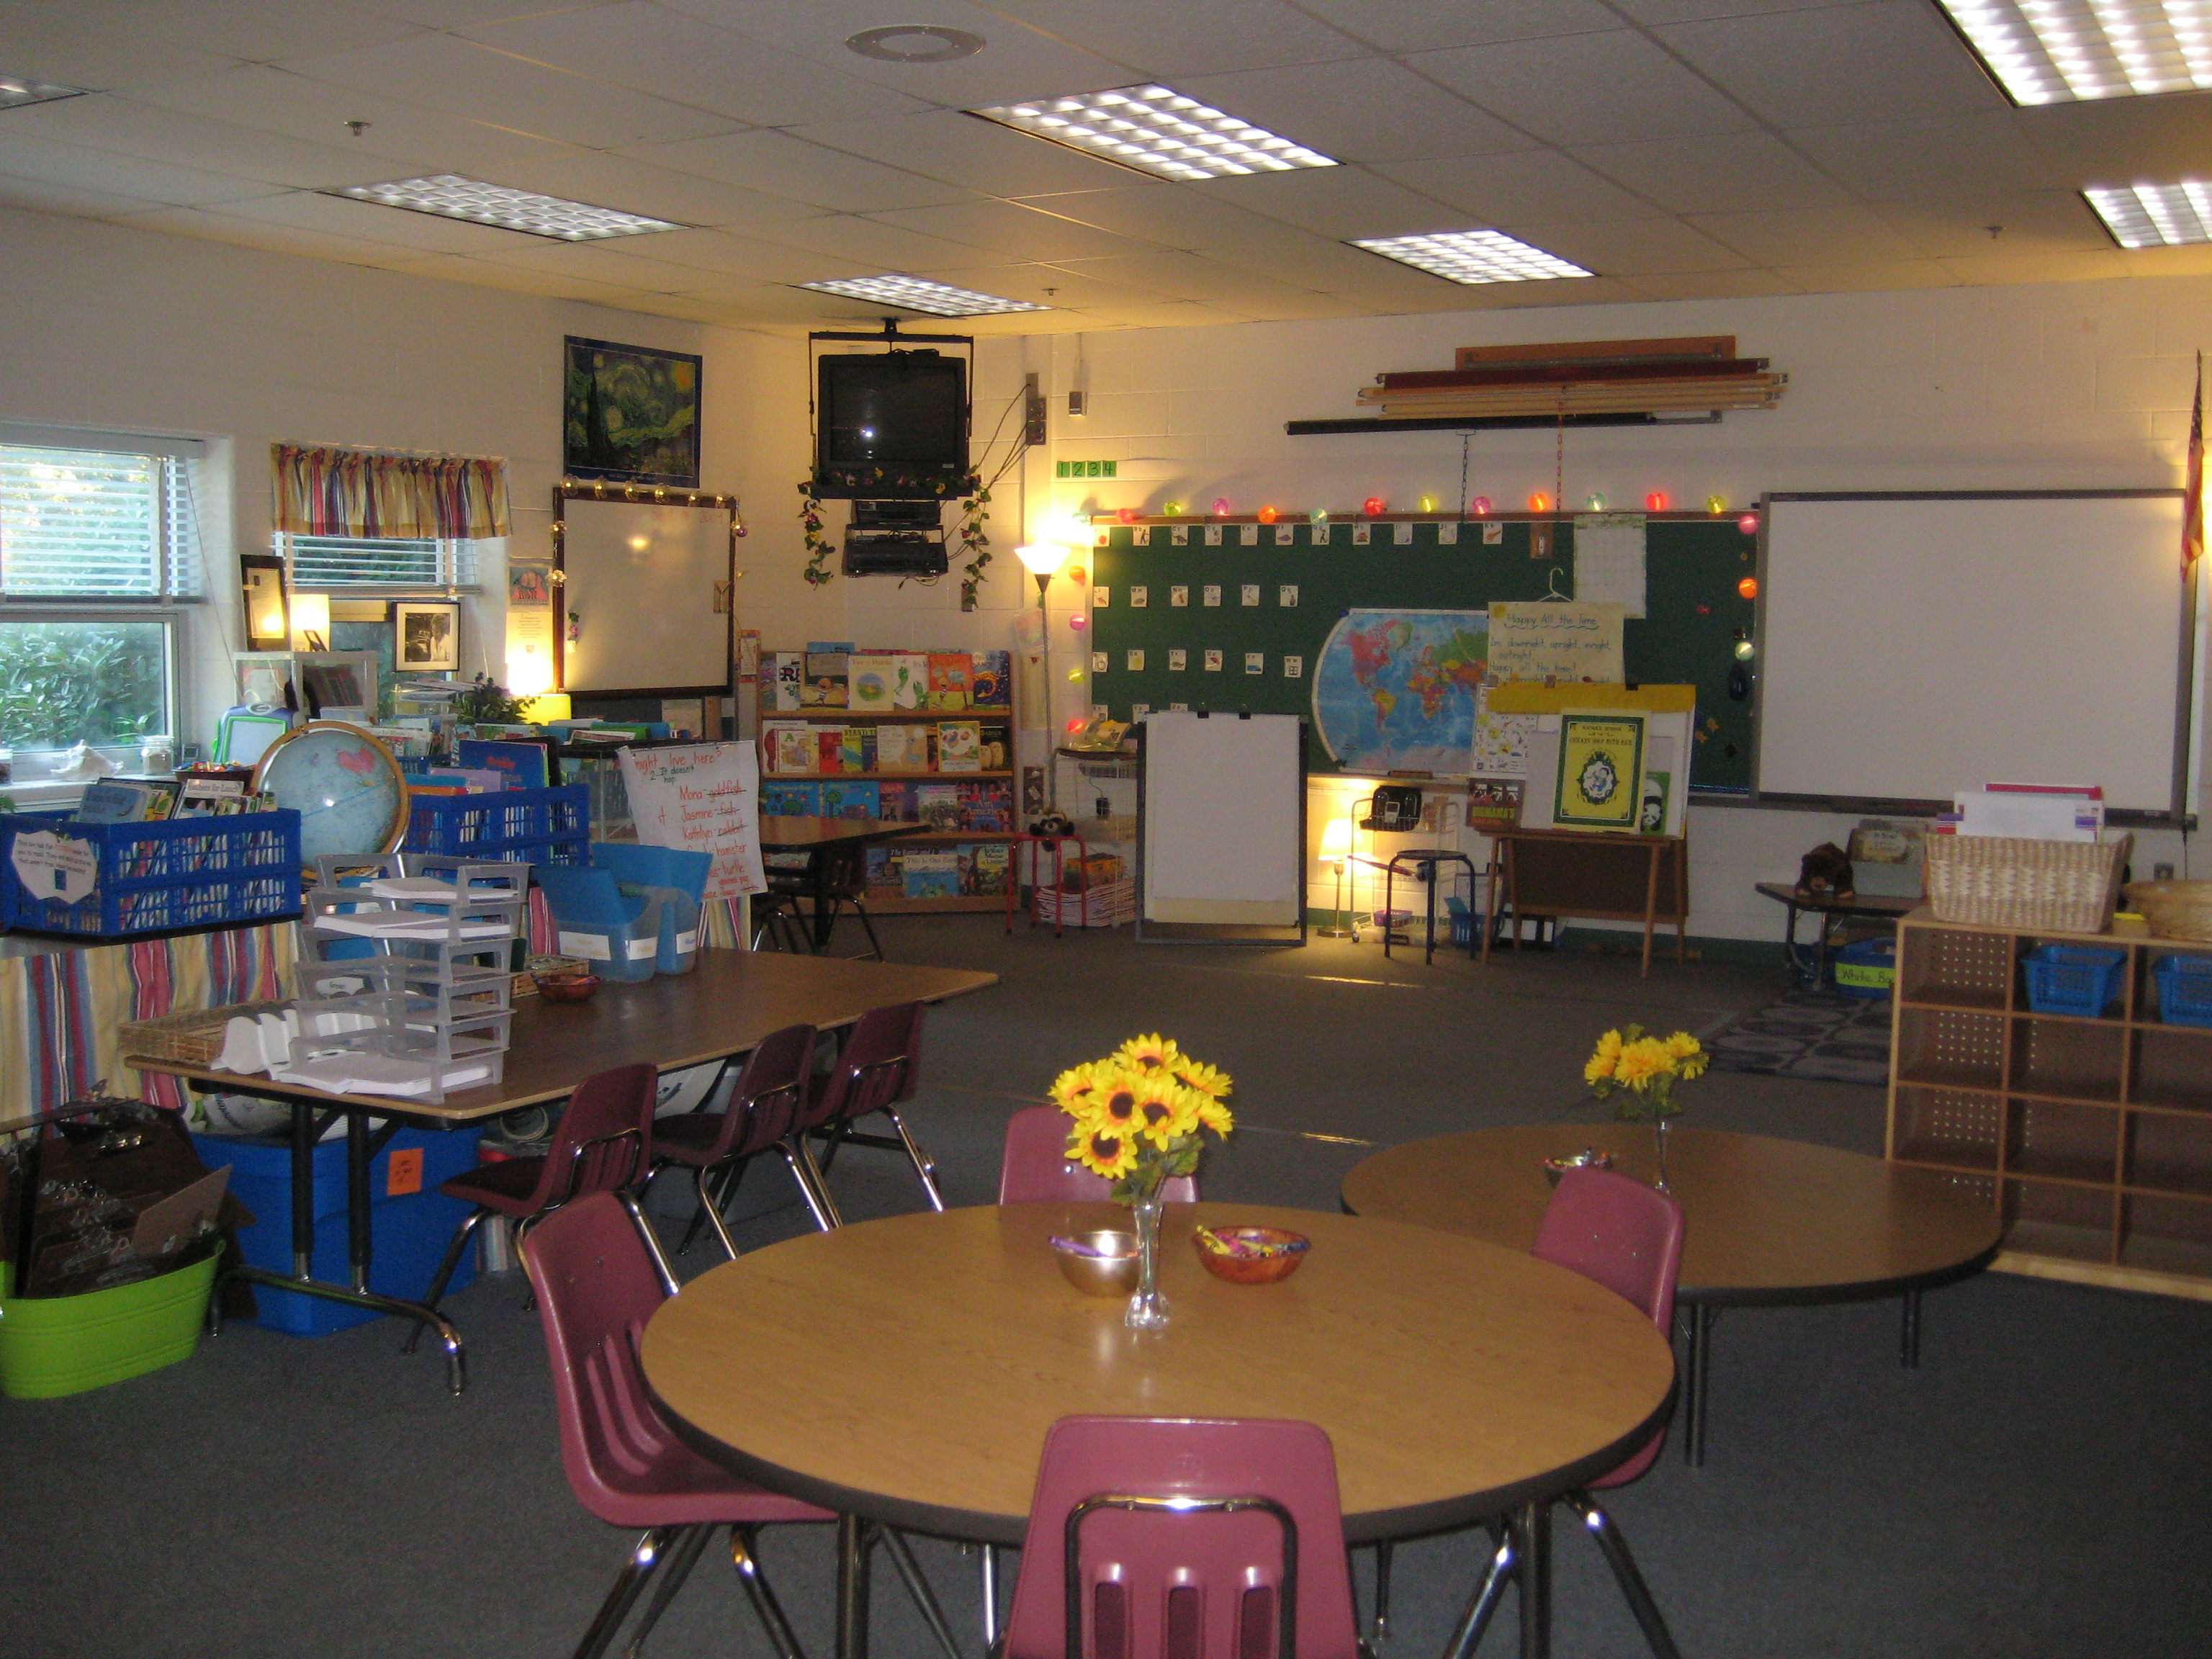 Reggio Classrooms http://catchingreaders.com/2010/08/15/designing-your-classroom-space/